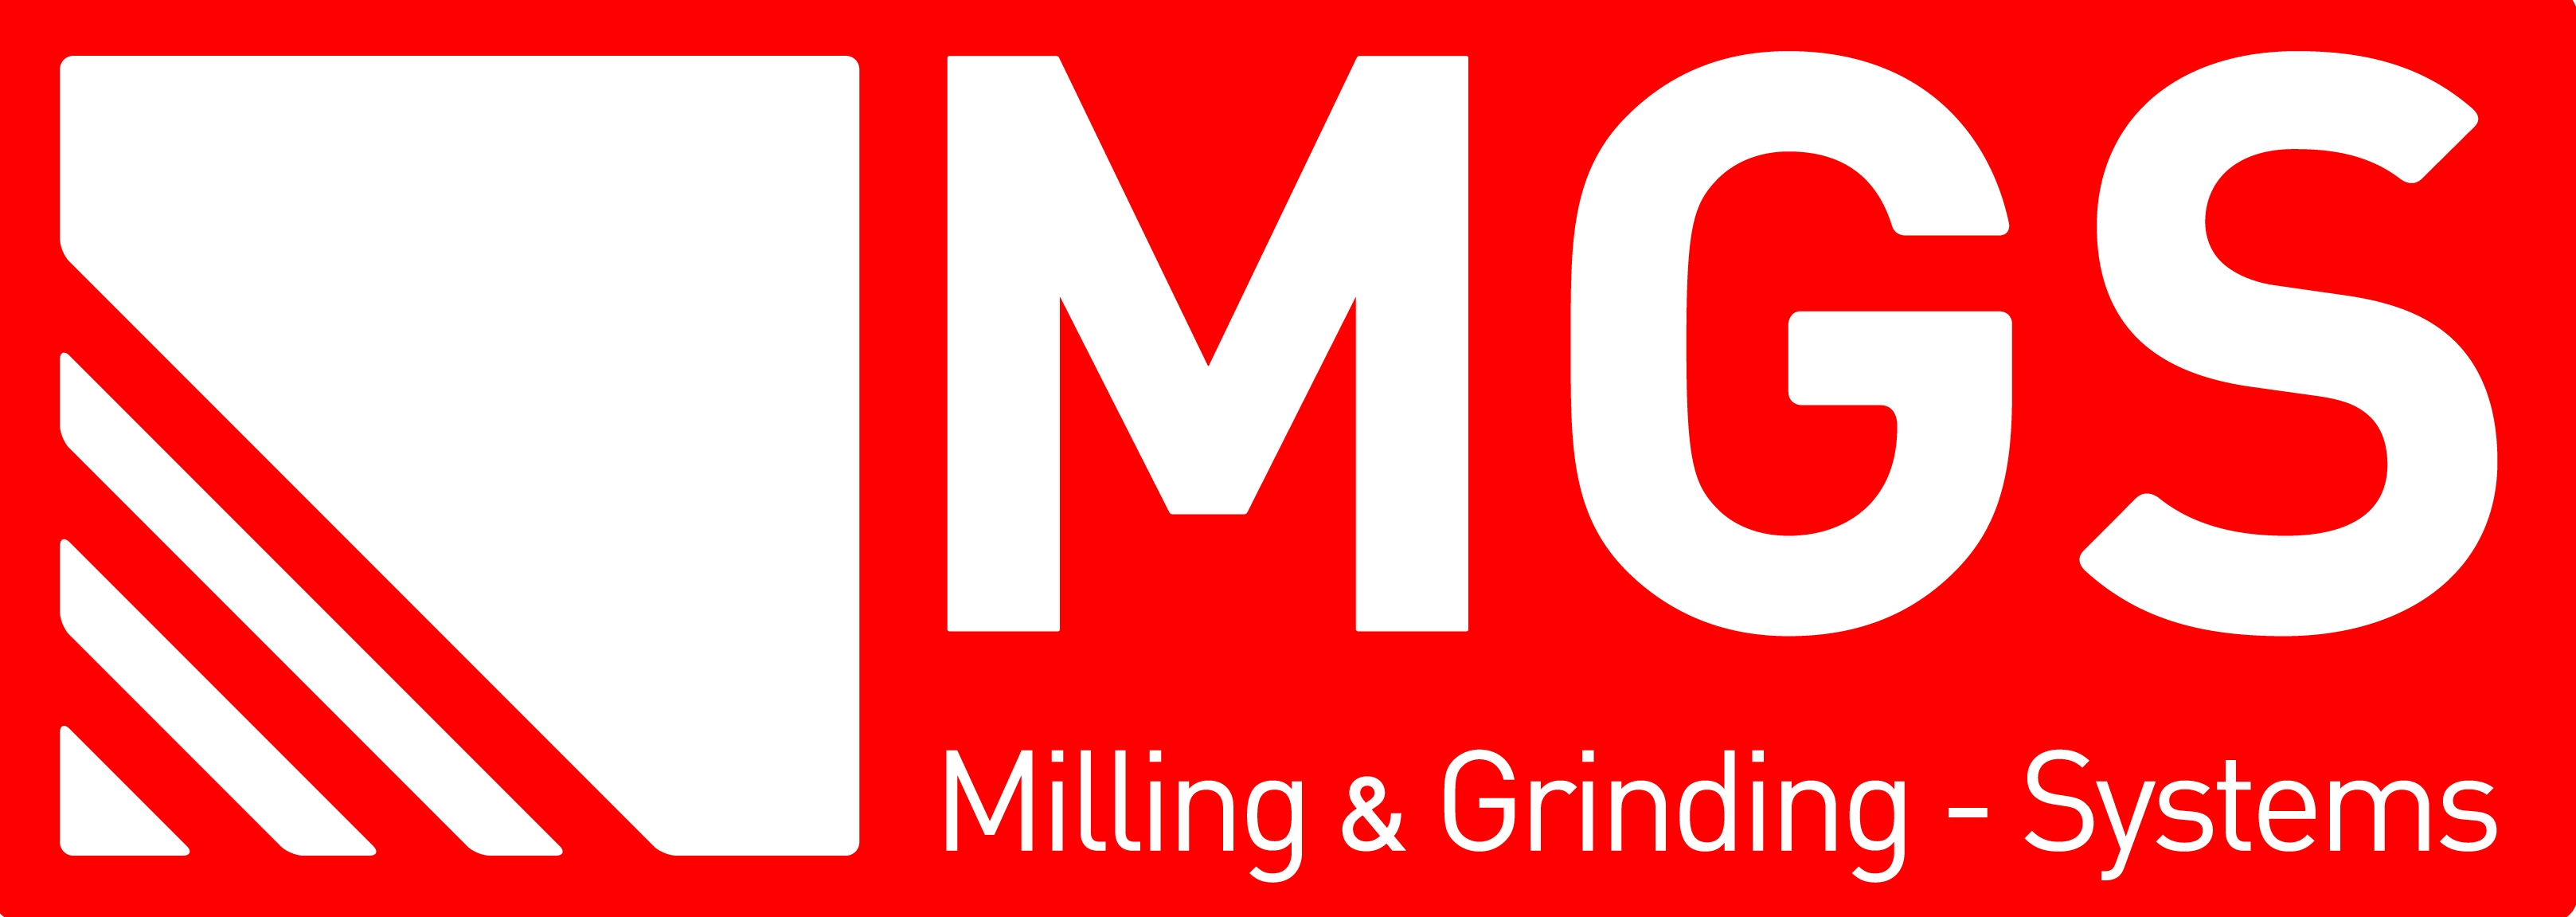 MGS-Milling & Grinding - Systems GmbH